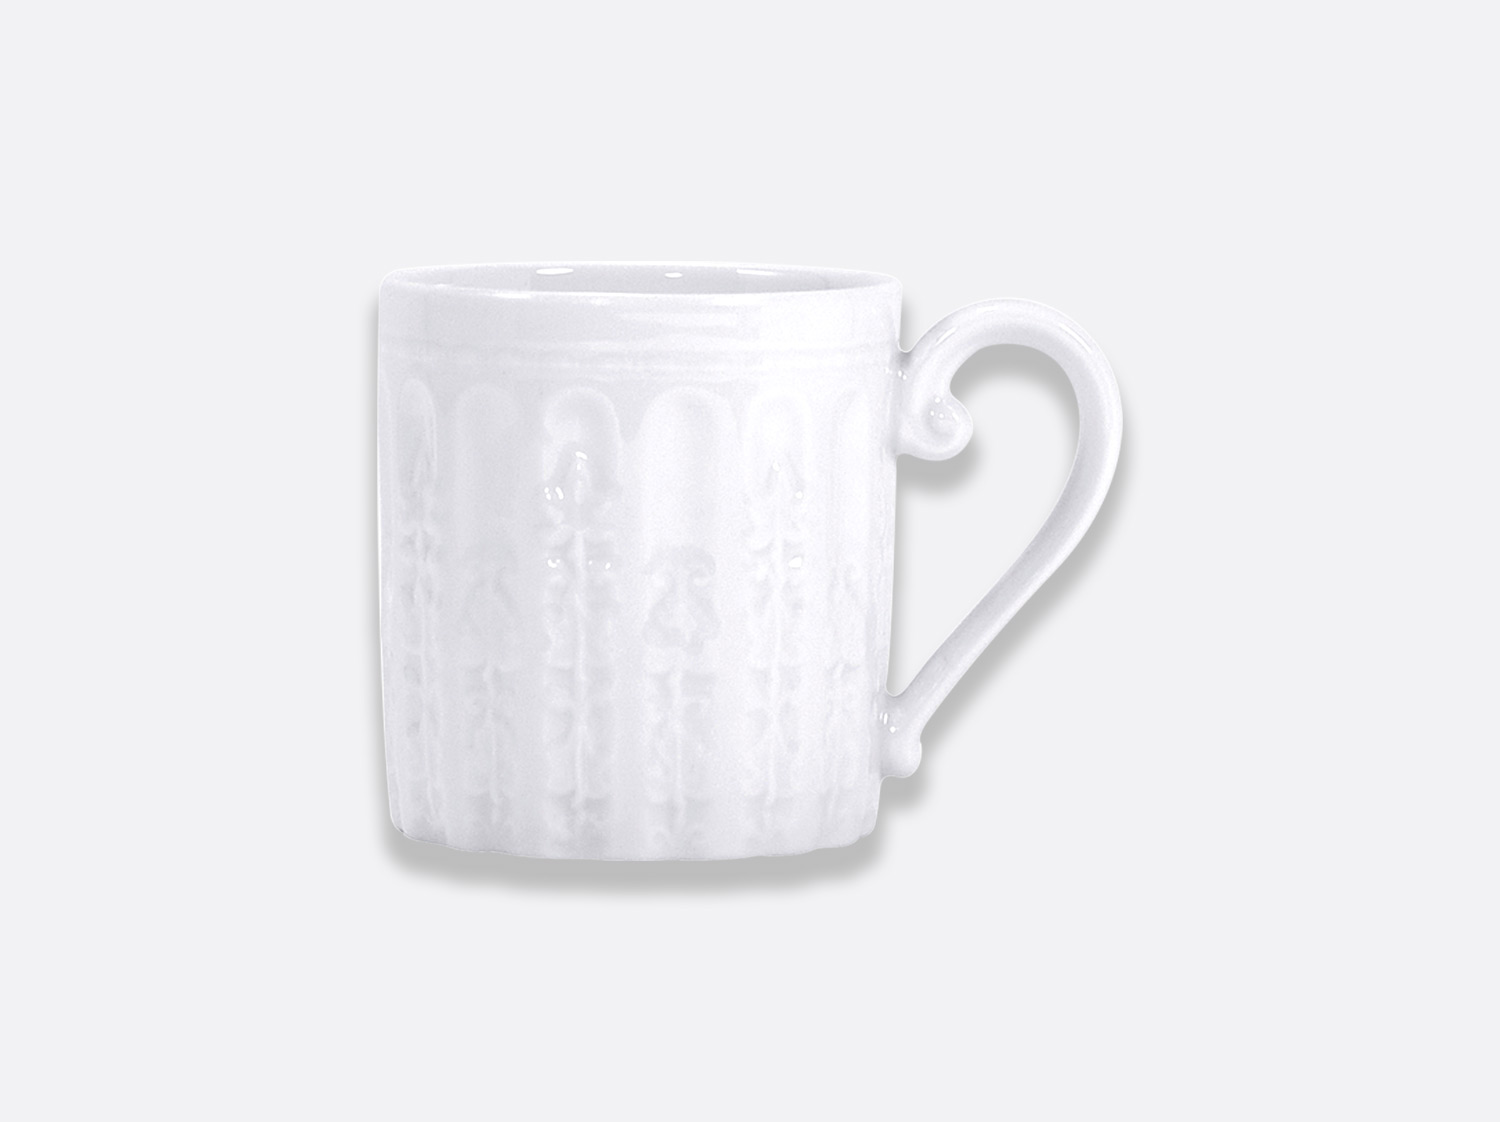 China Mug 30 cl of the collection Louvre | Bernardaud